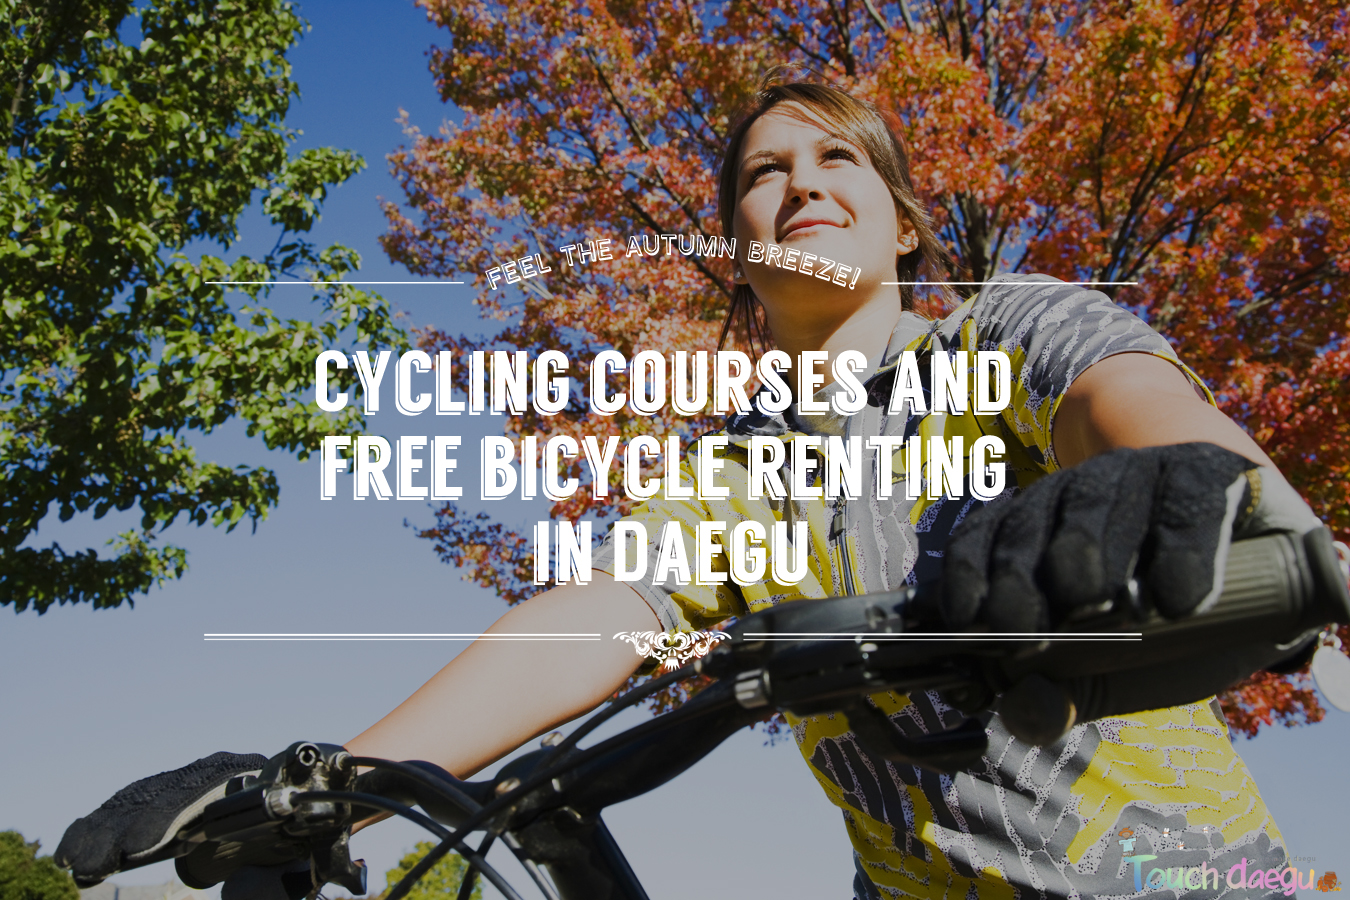 Cycling courses for fall season and free bicycle renting in Daegu